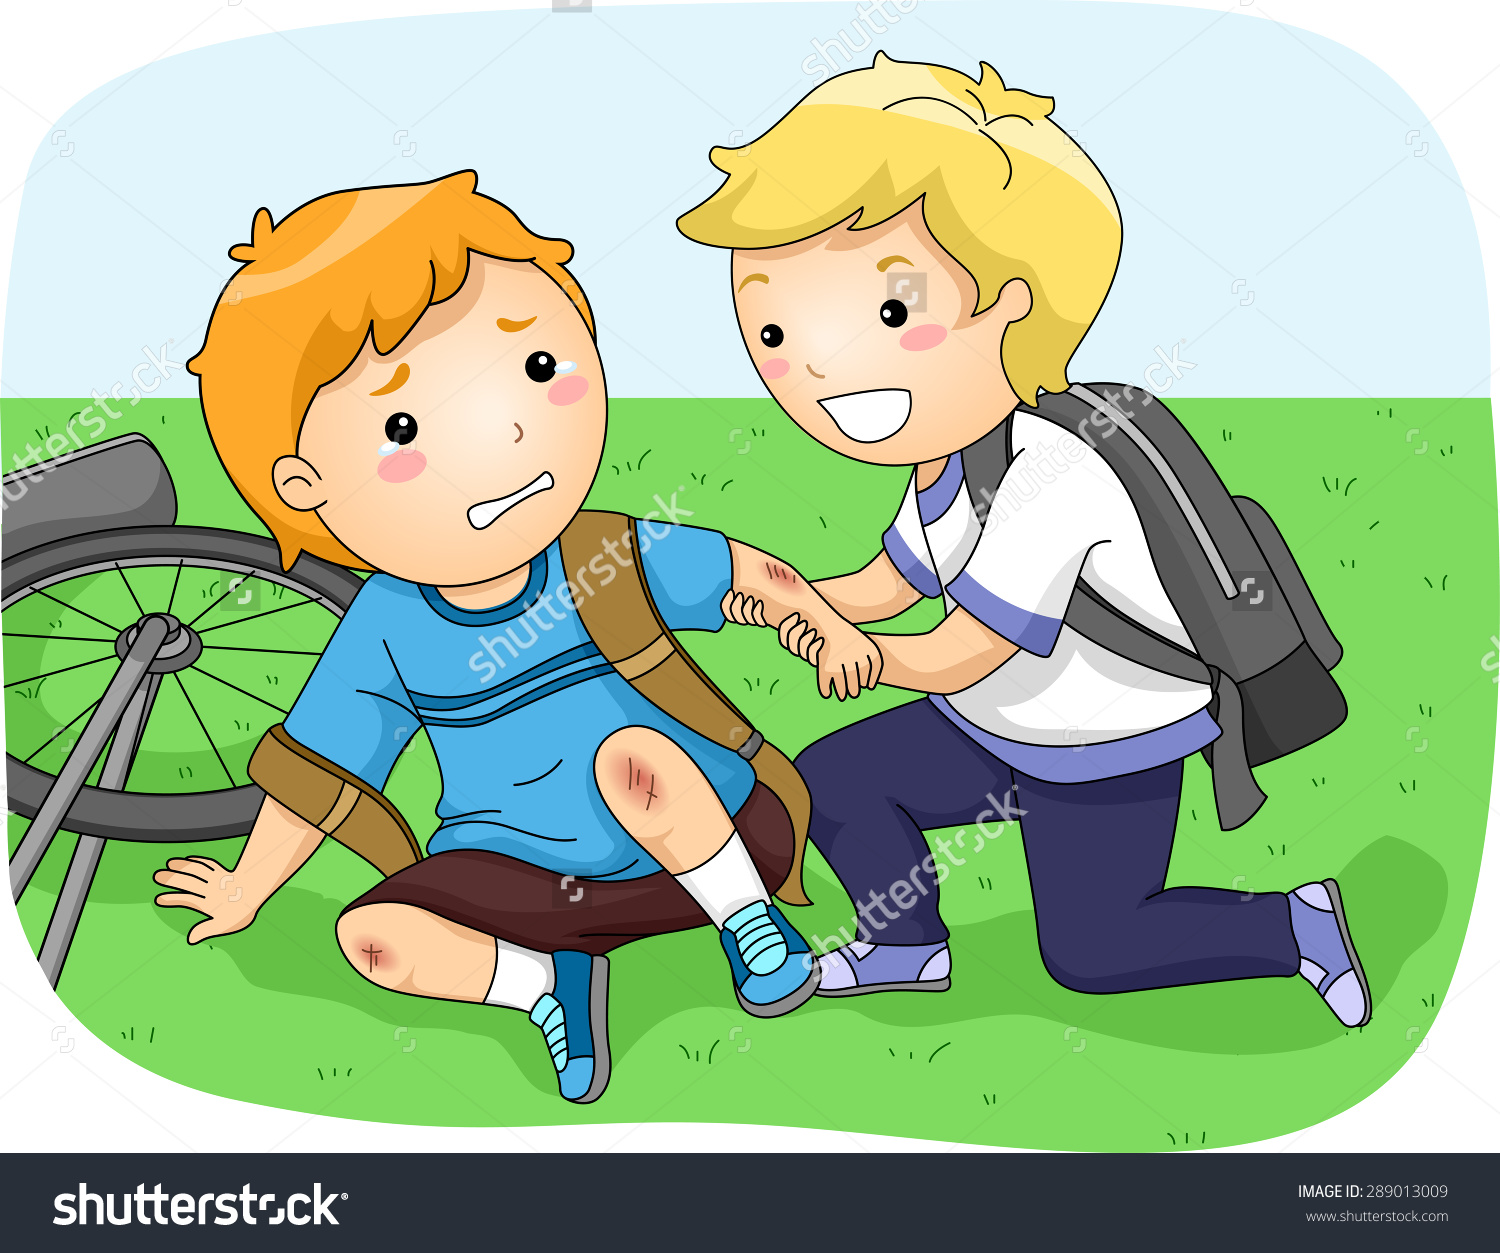 Illustration Little Boy Helping Another Boy Stock Vector 289013009.